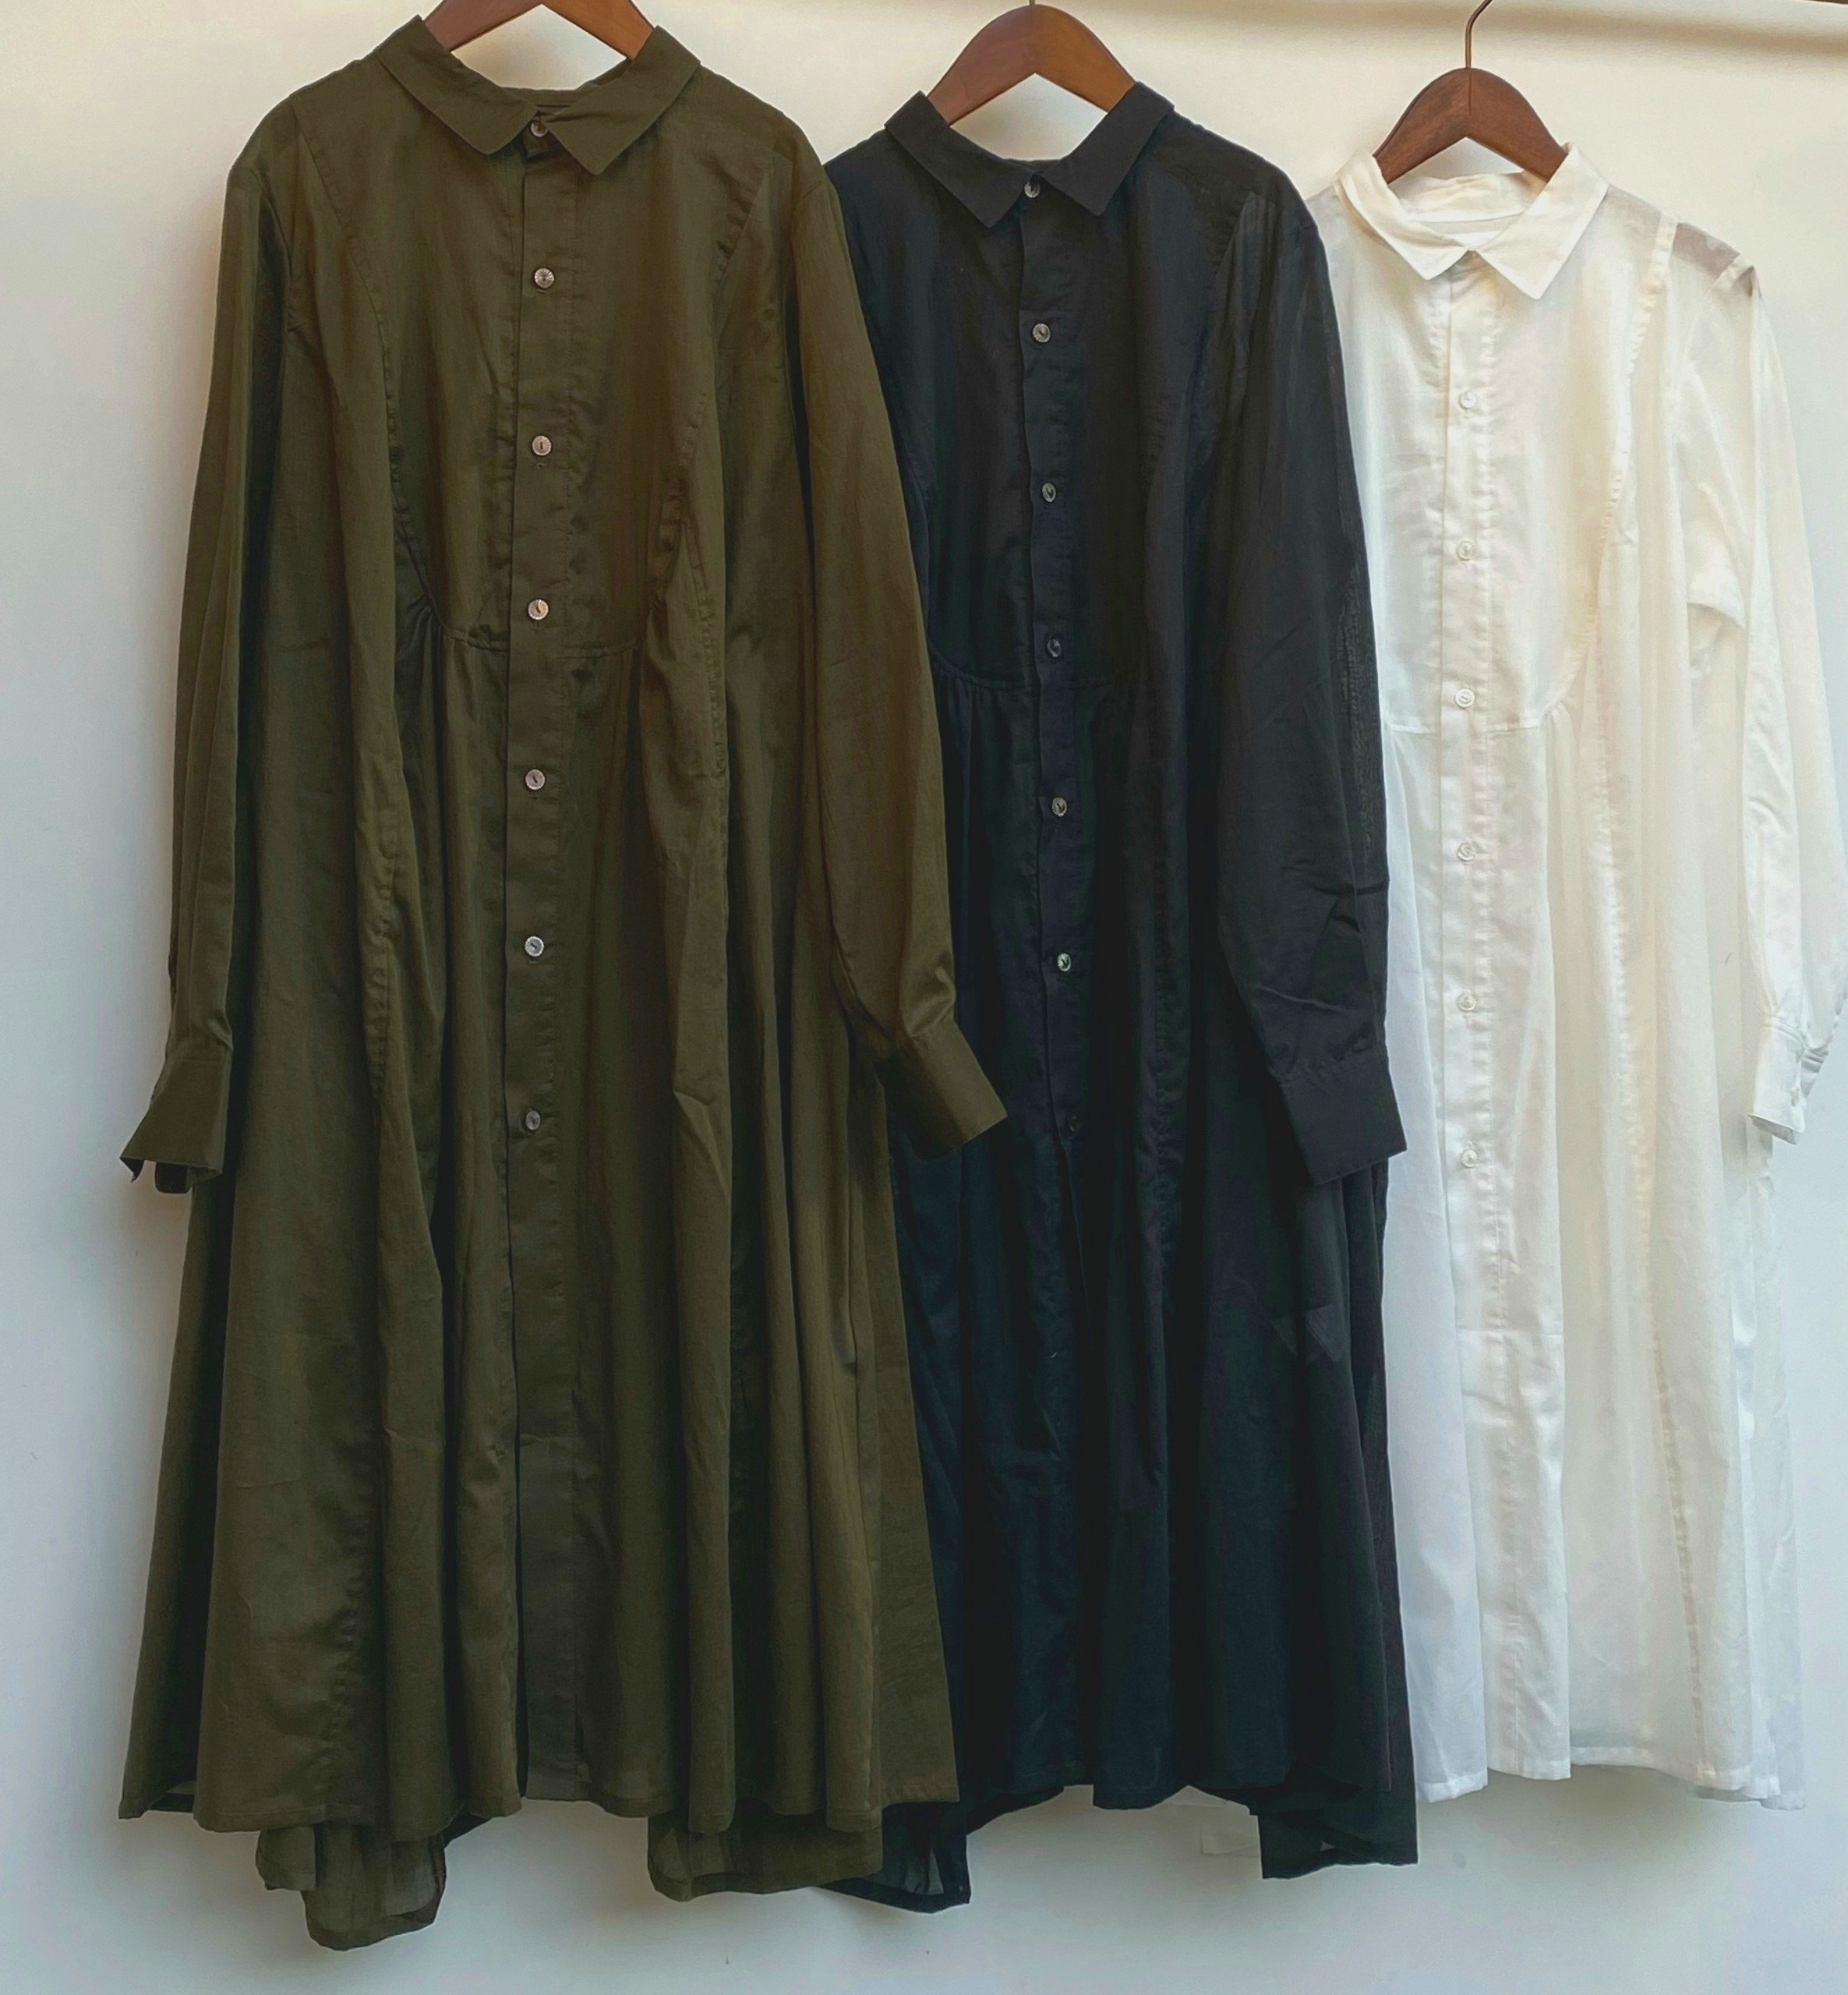 the last flower of the afternoon/ 揺蕩いのrobe shirt